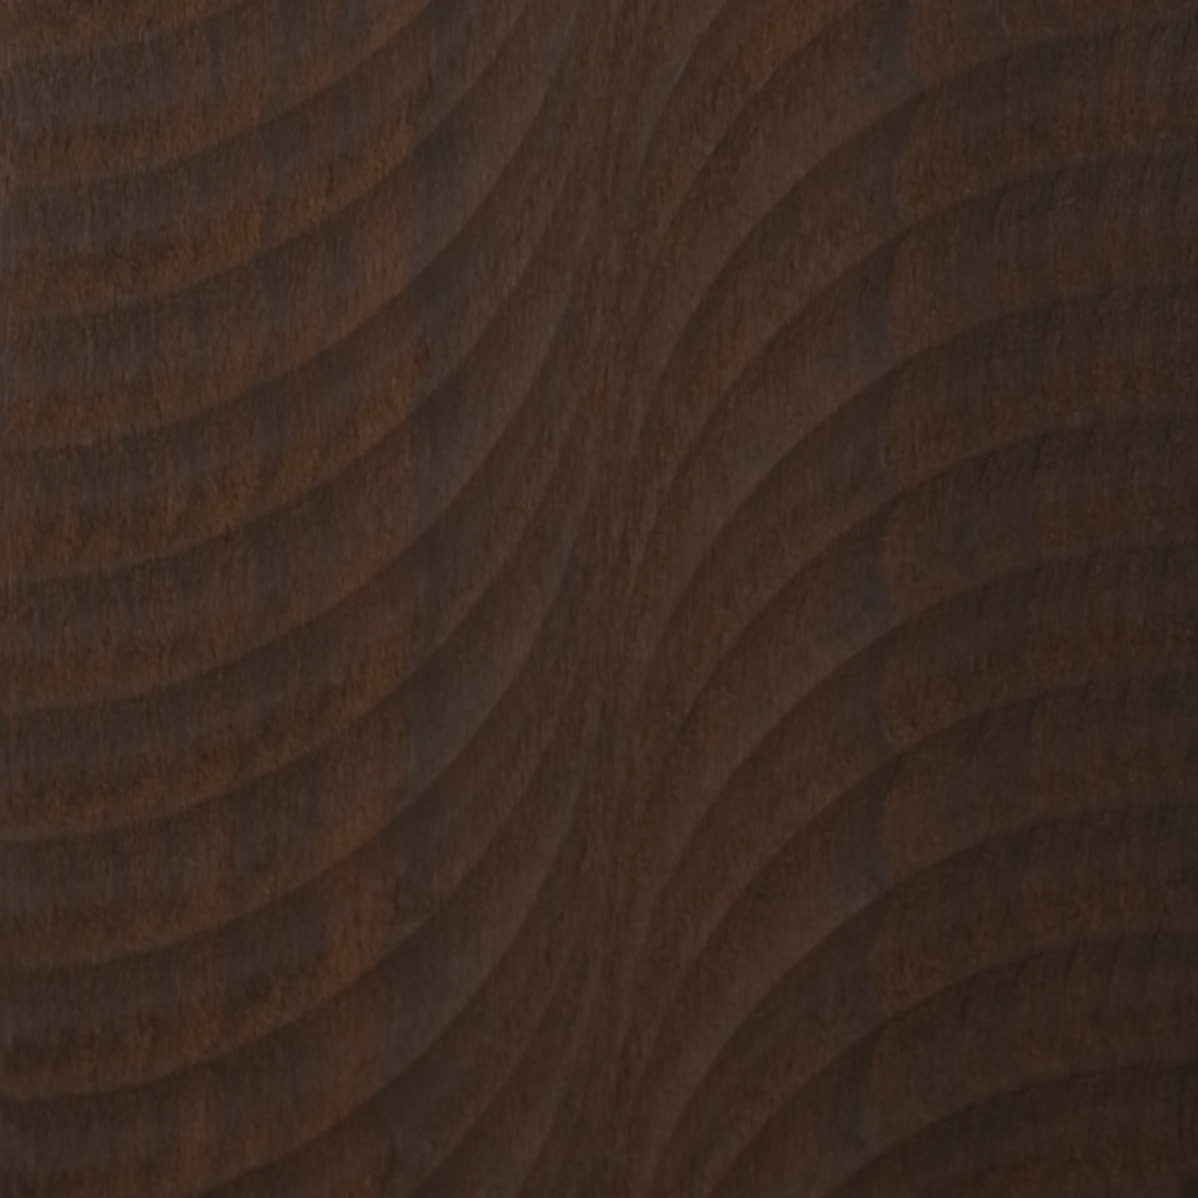 Element7-wide-plank-samples-Fired-rippled-beech